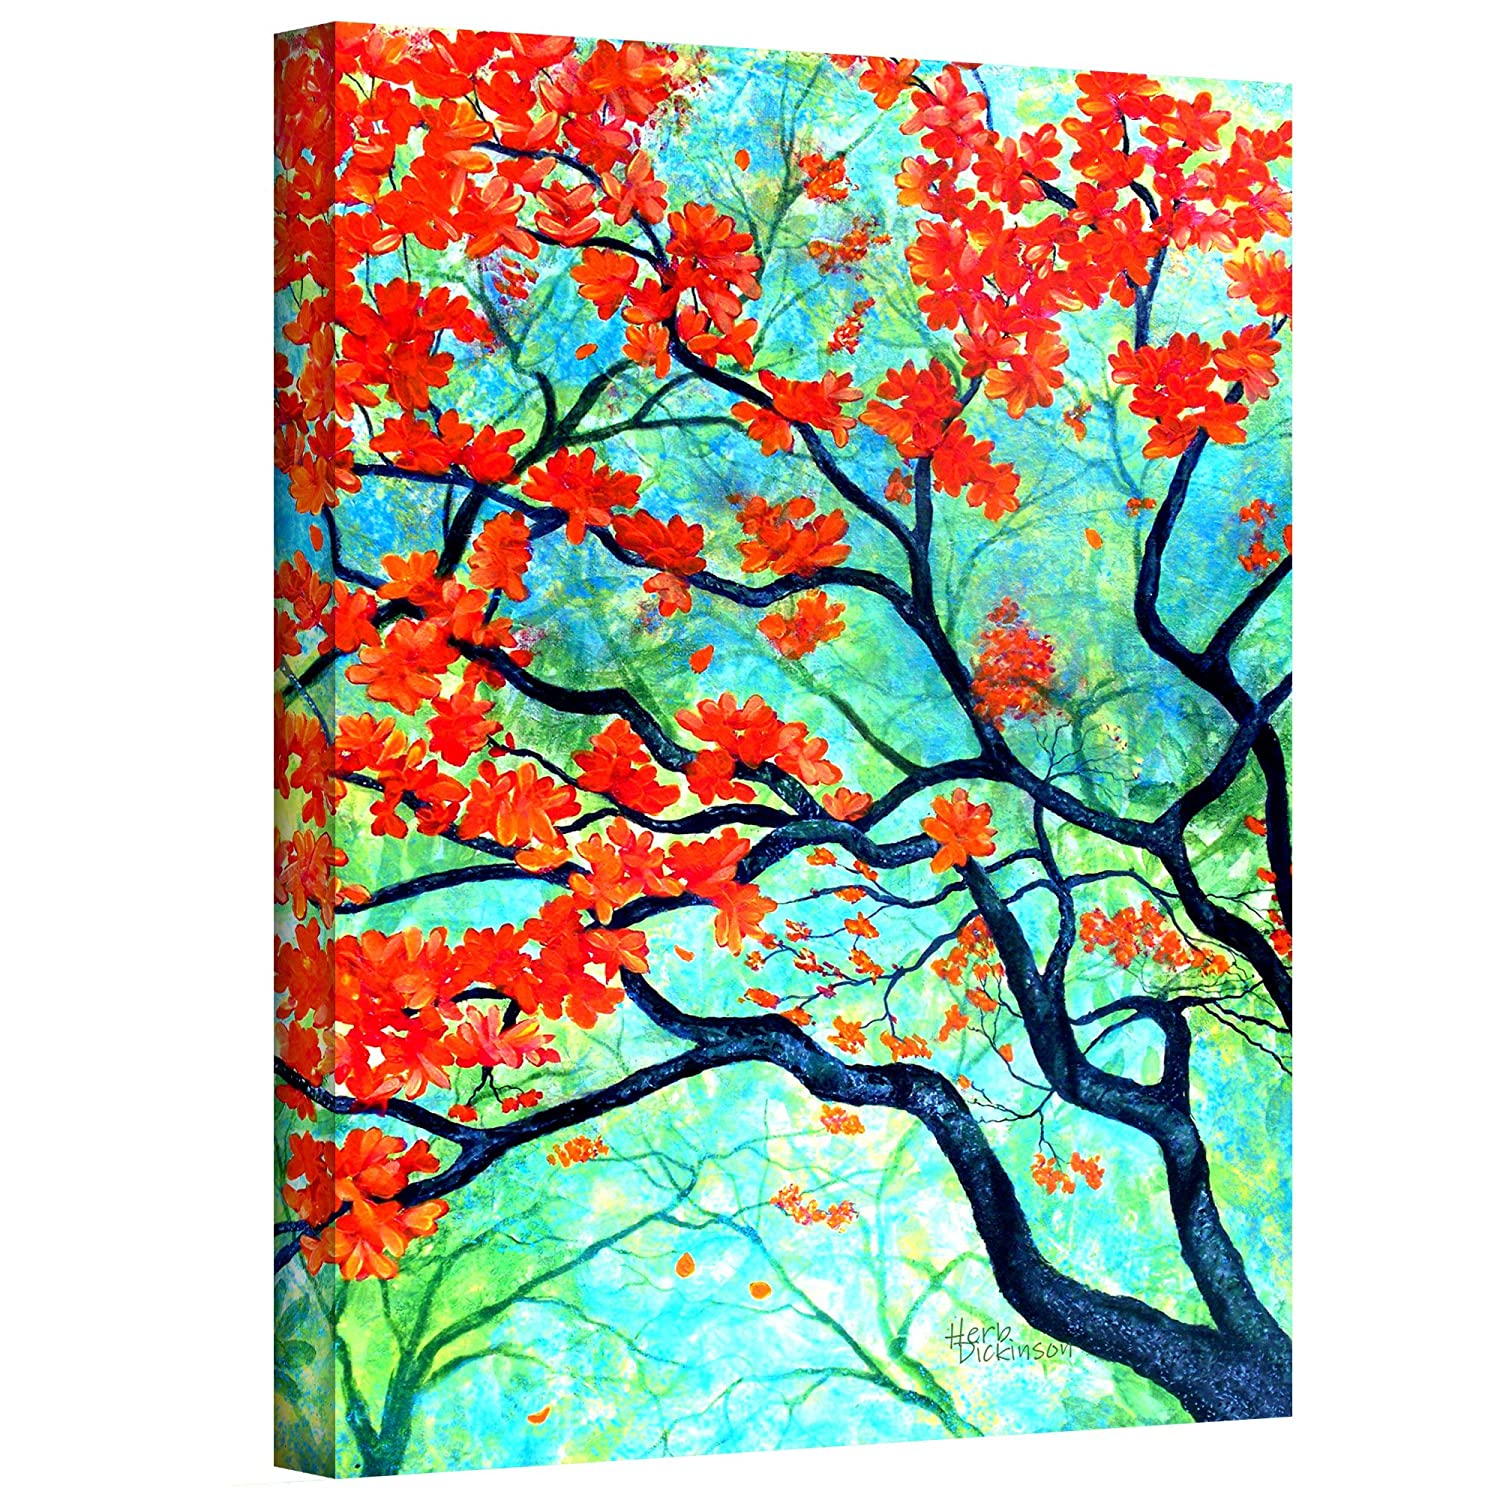 32 by 24-Inch The Art Wall Herb-089-32x24-w ArtWall Spring Joy Gallery Wrapped Canvas Artwork by Herb Dickinson